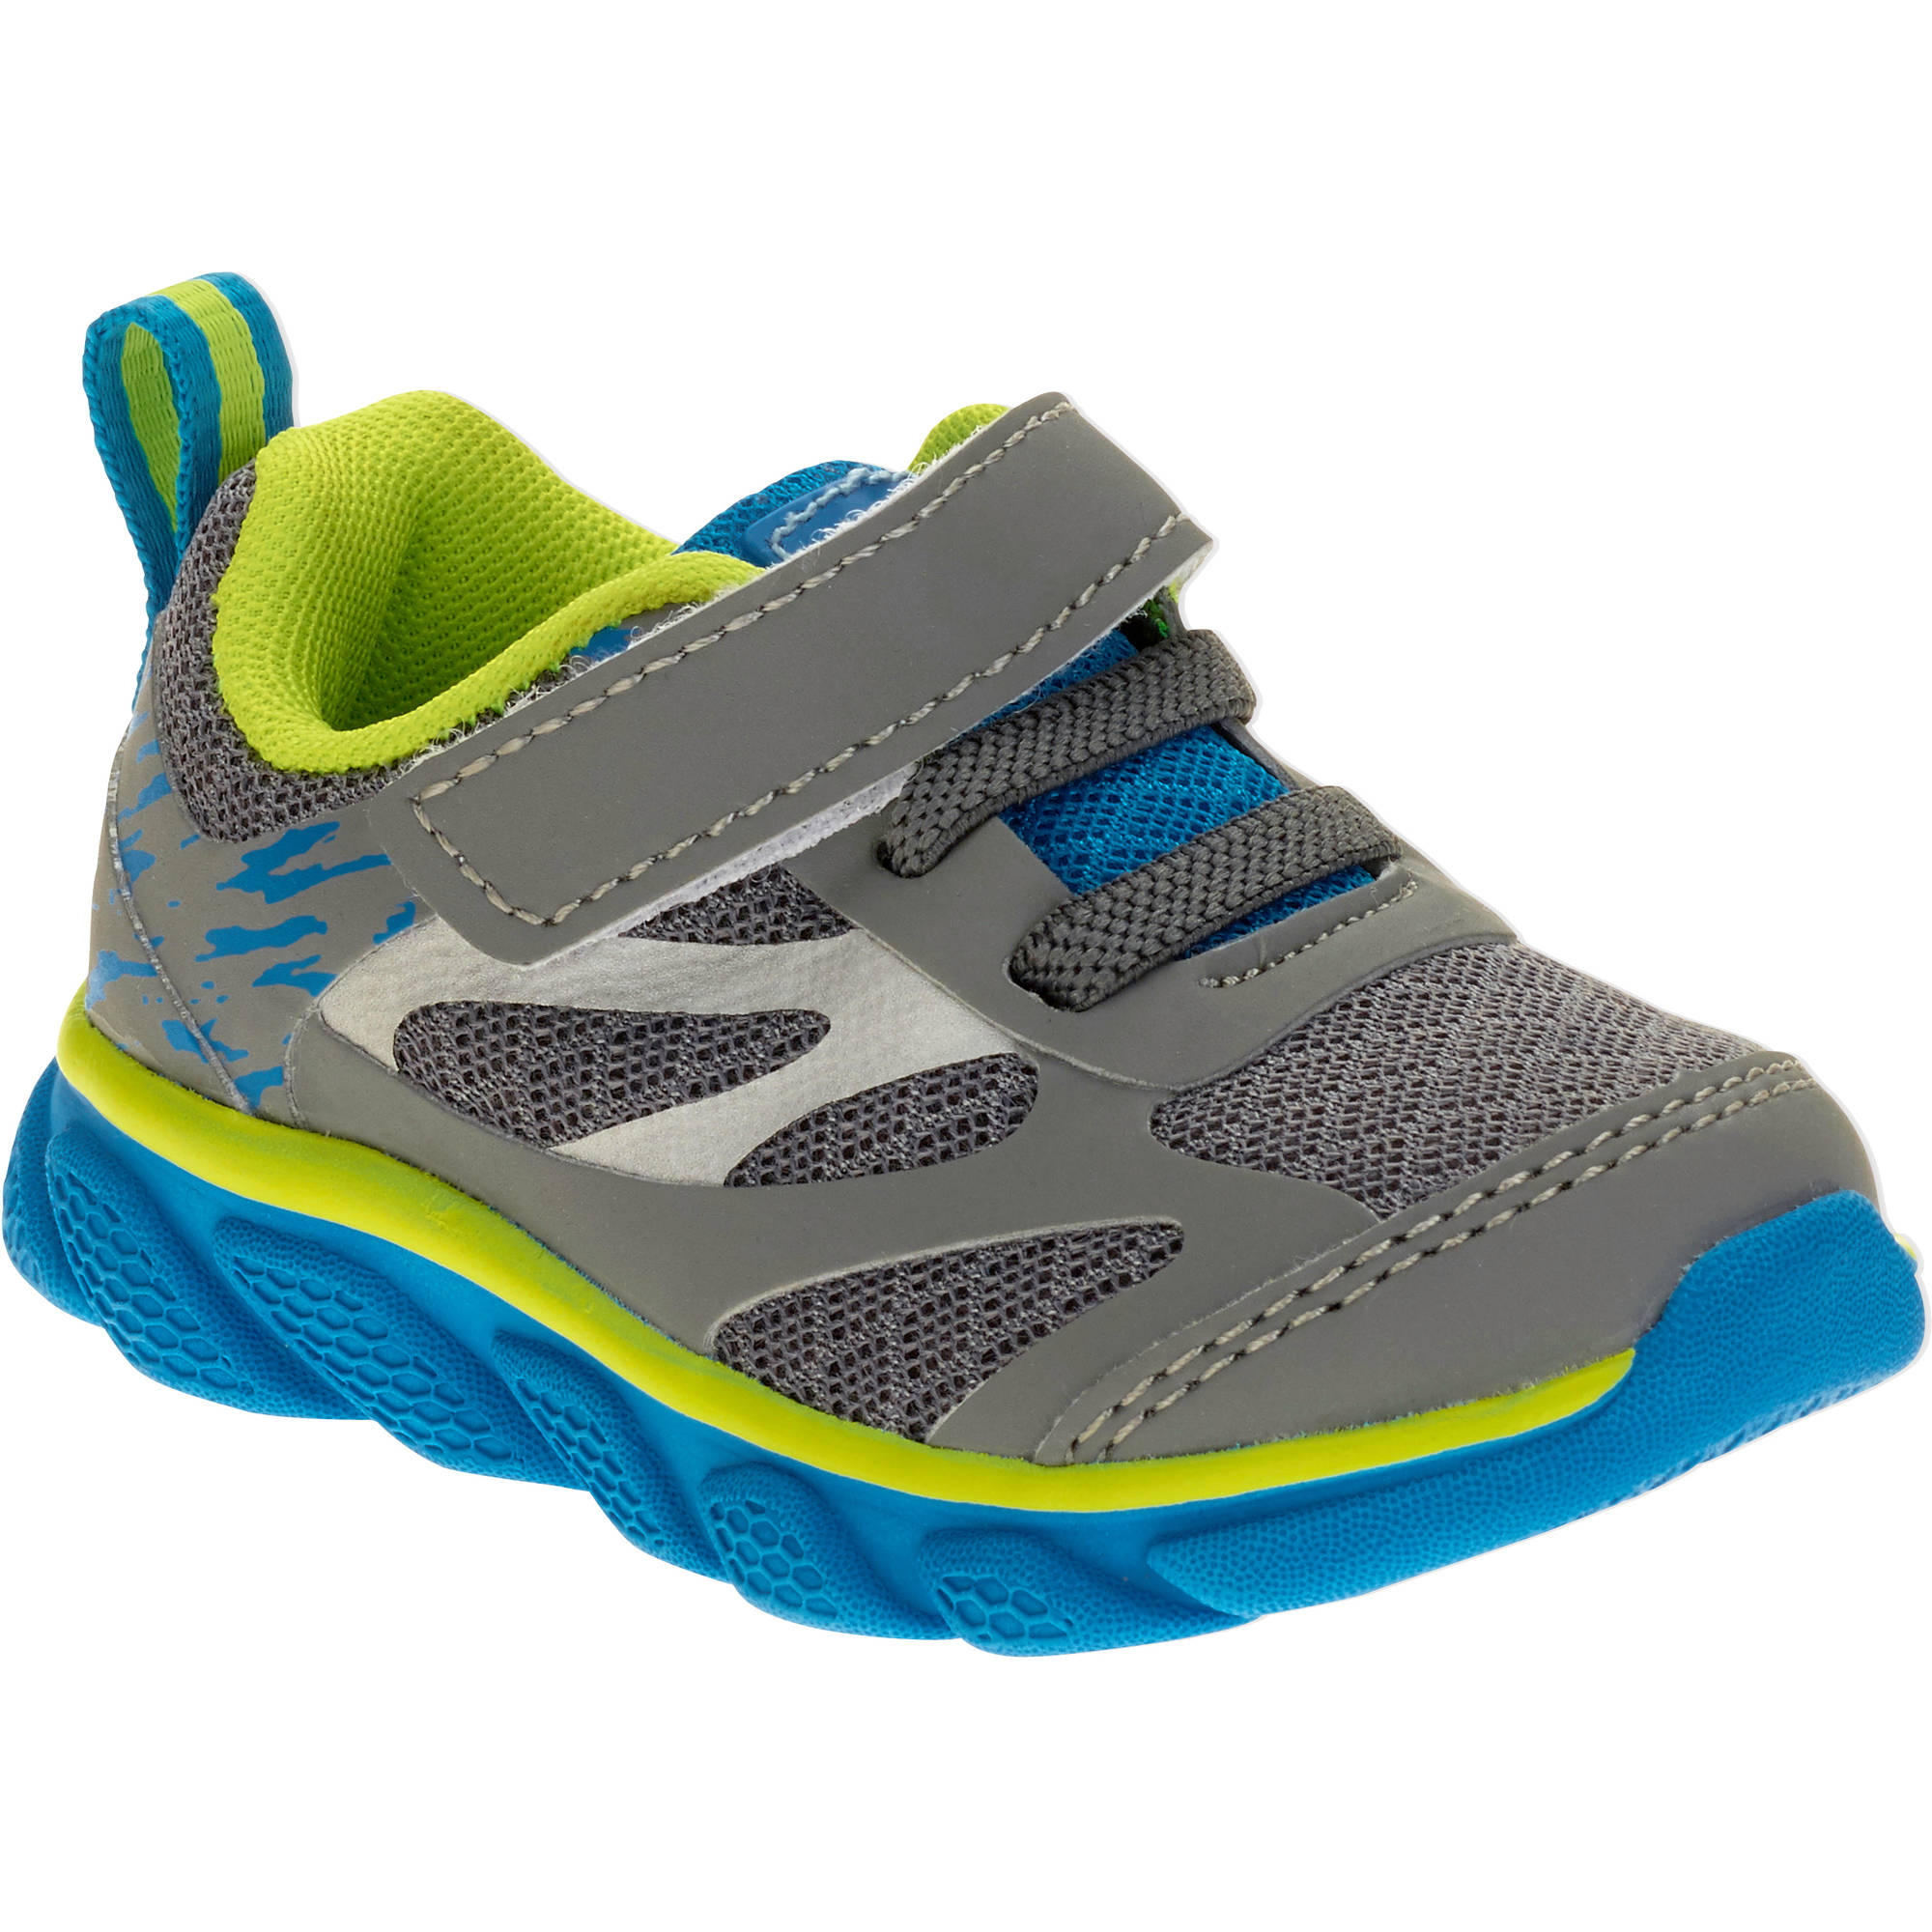 Garanimals Infant Boys Athletic Lightweight Shoe